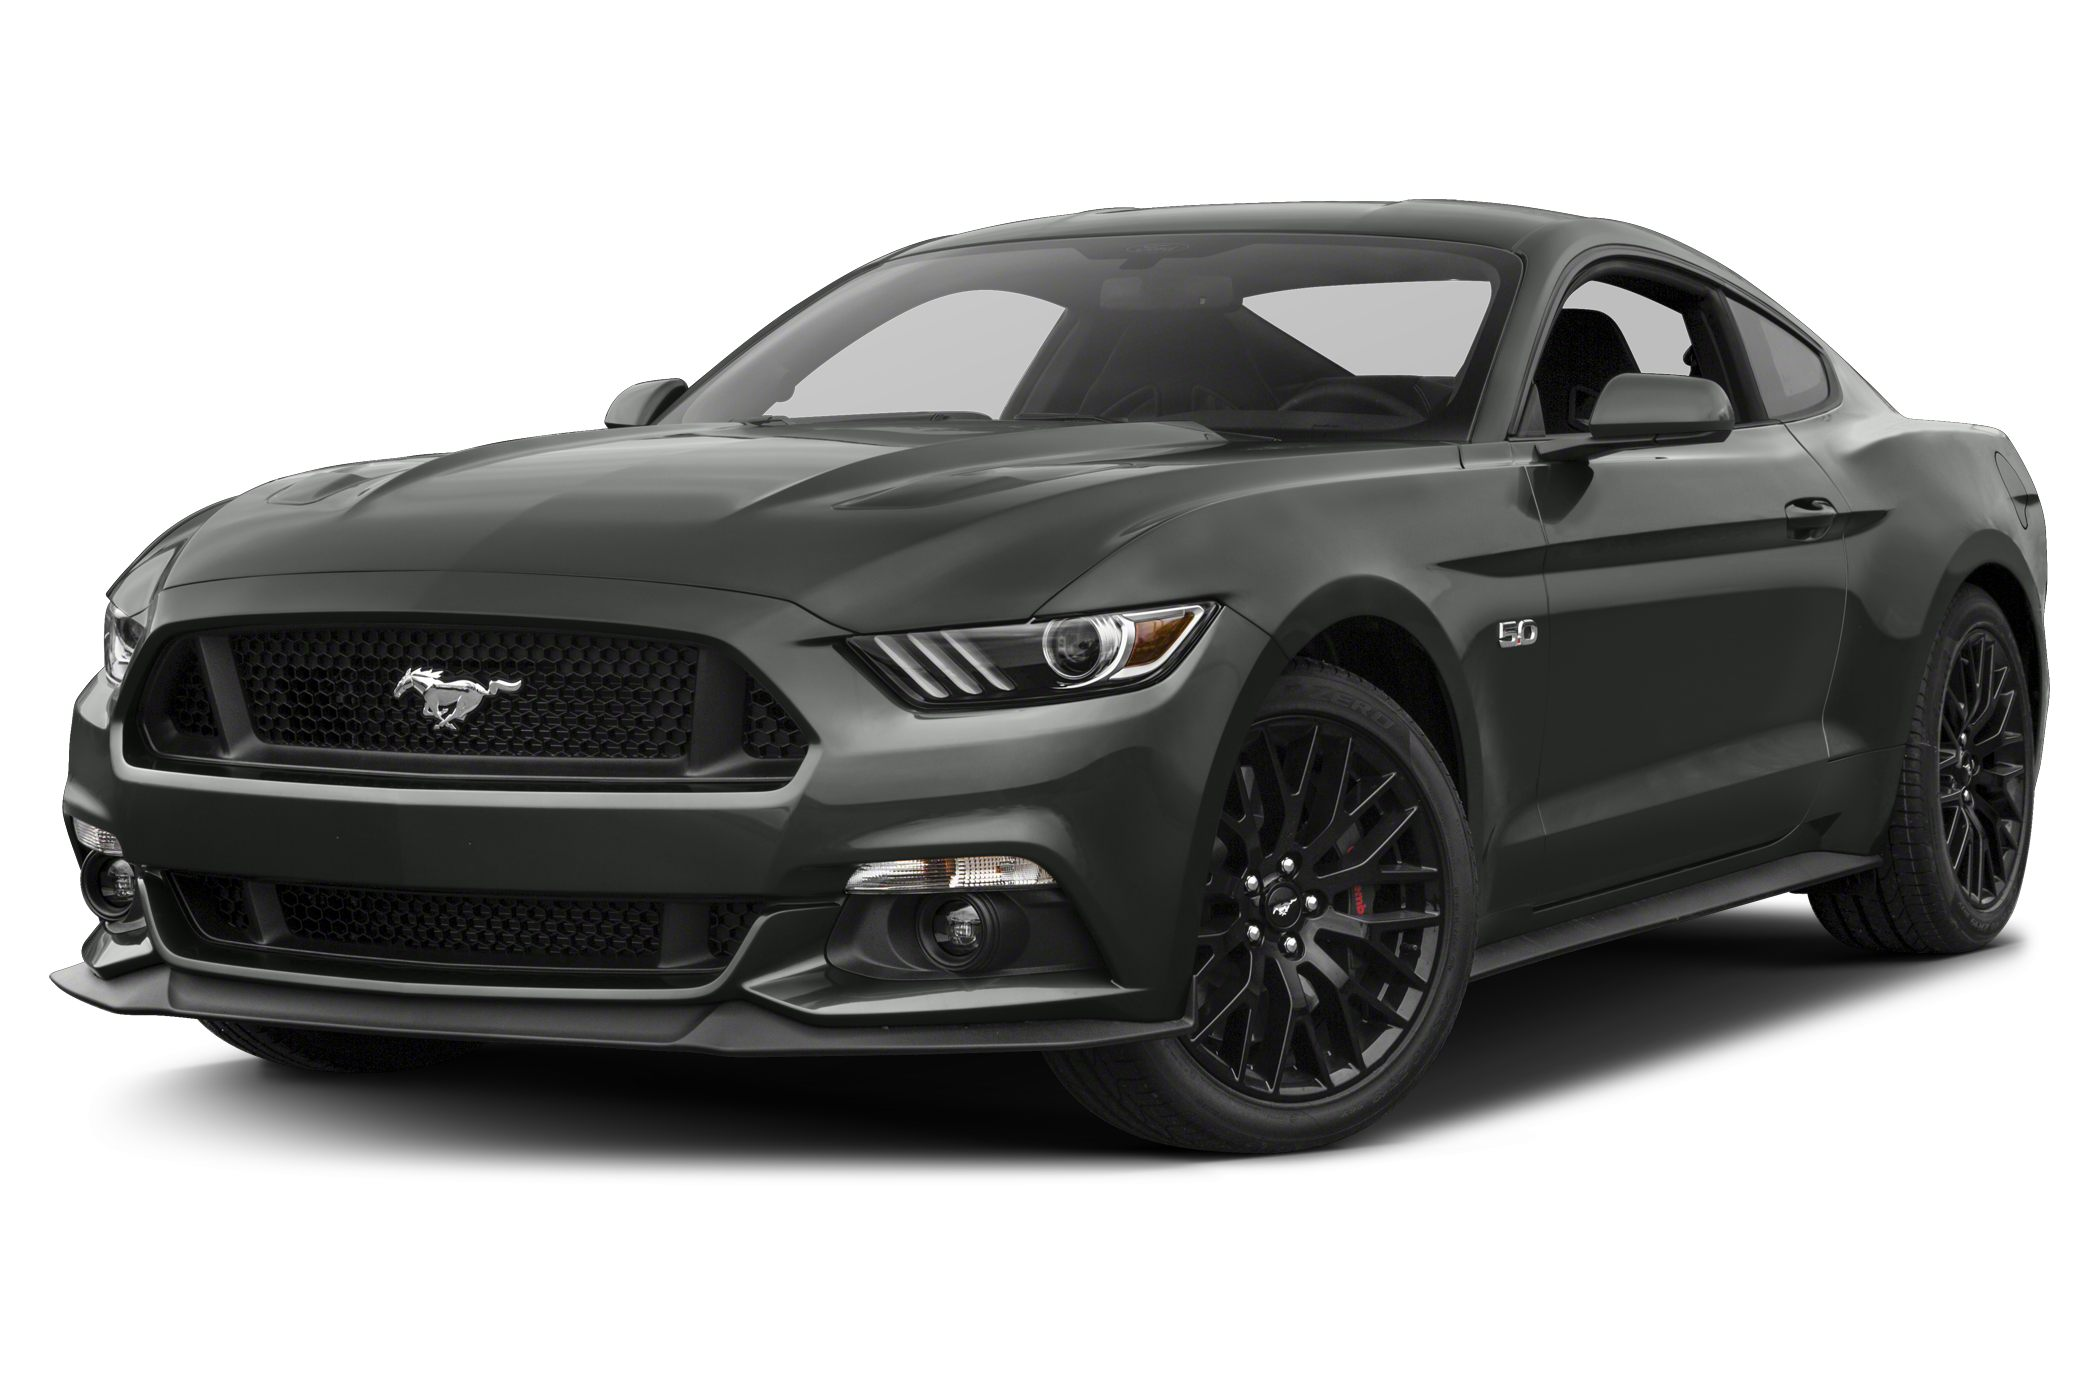 2015 Ford Mustang GT Premium Coupe for sale in Alvin for $42,695 with 7 miles.